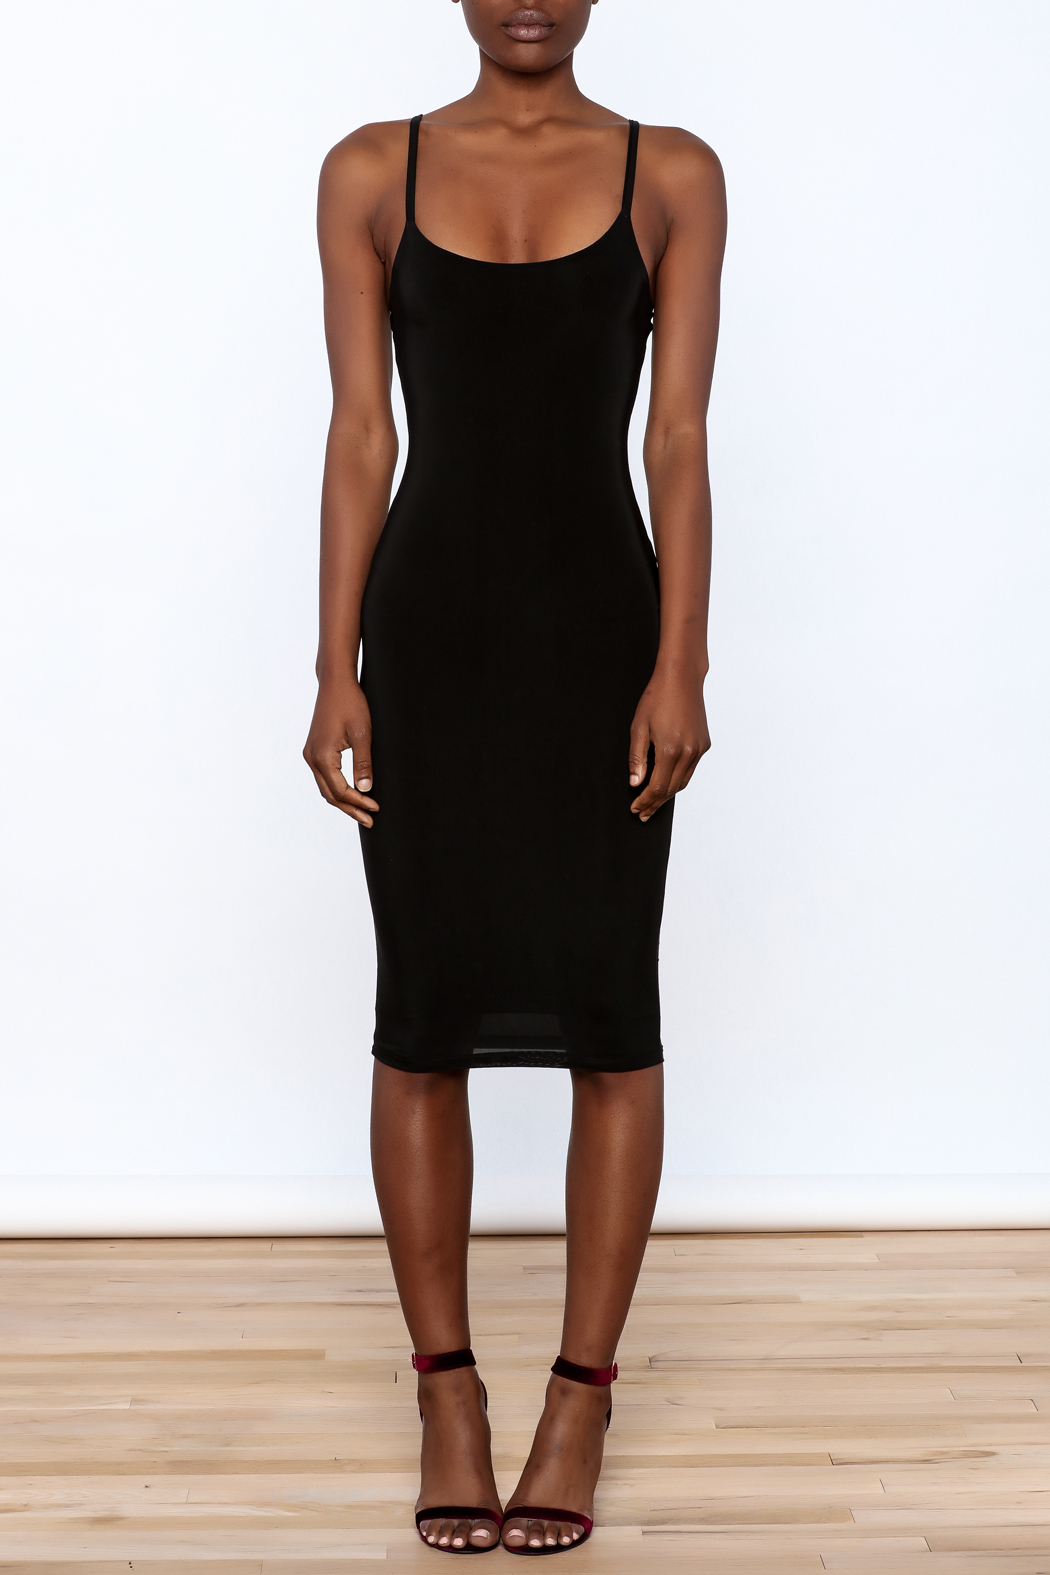 0c3e1254c472 Uptown Sexy Sleeveless Bodycon Dress from New York by Dor L Dor ...